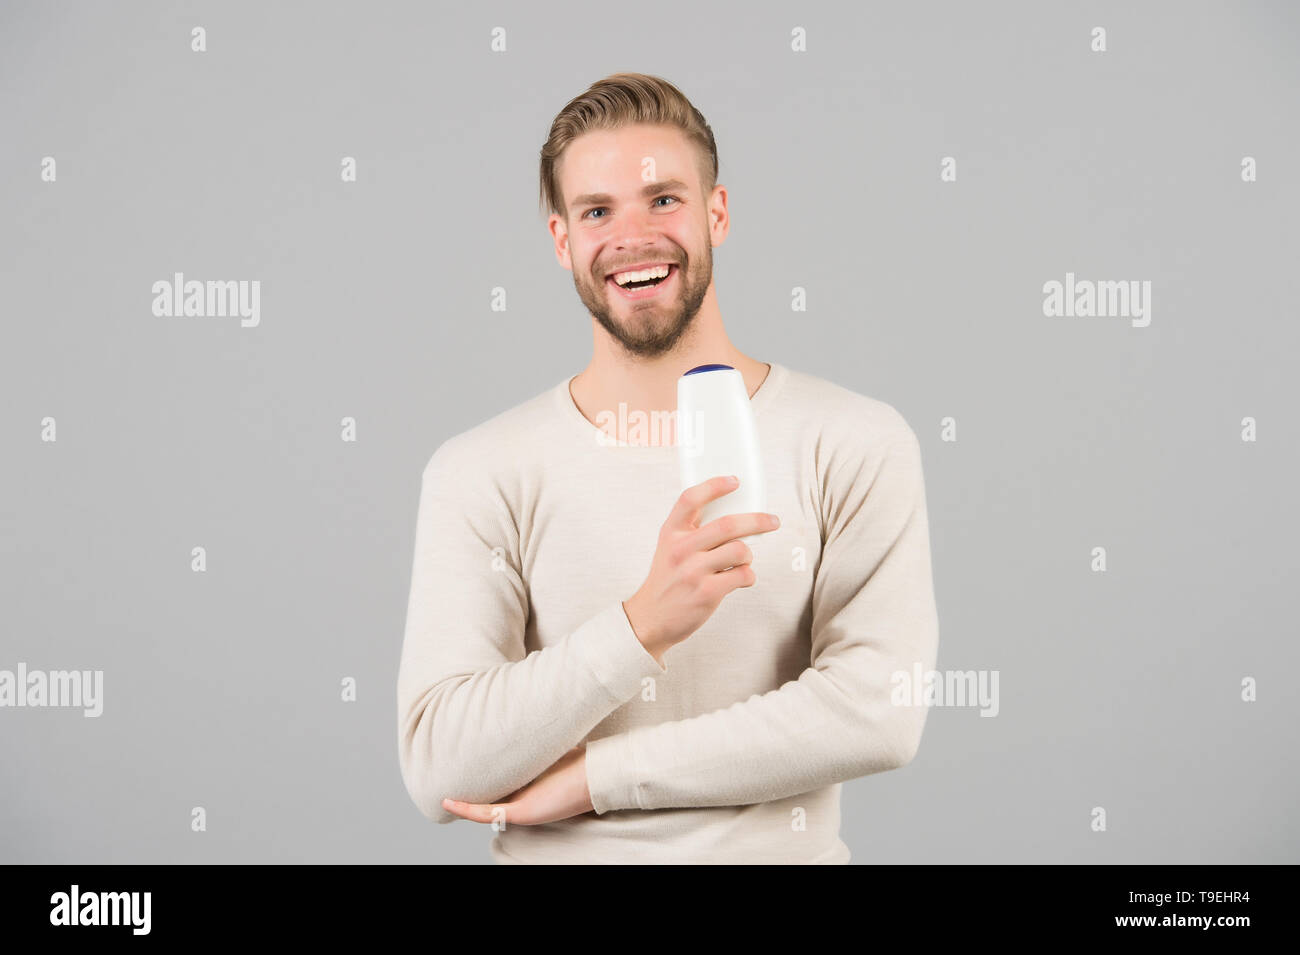 Hair care and beauty supplies concept. Man happy face holds shampoo bottle, grey background. Guy with bristle holds bottle shampoo, copy space. Man en - Stock Image